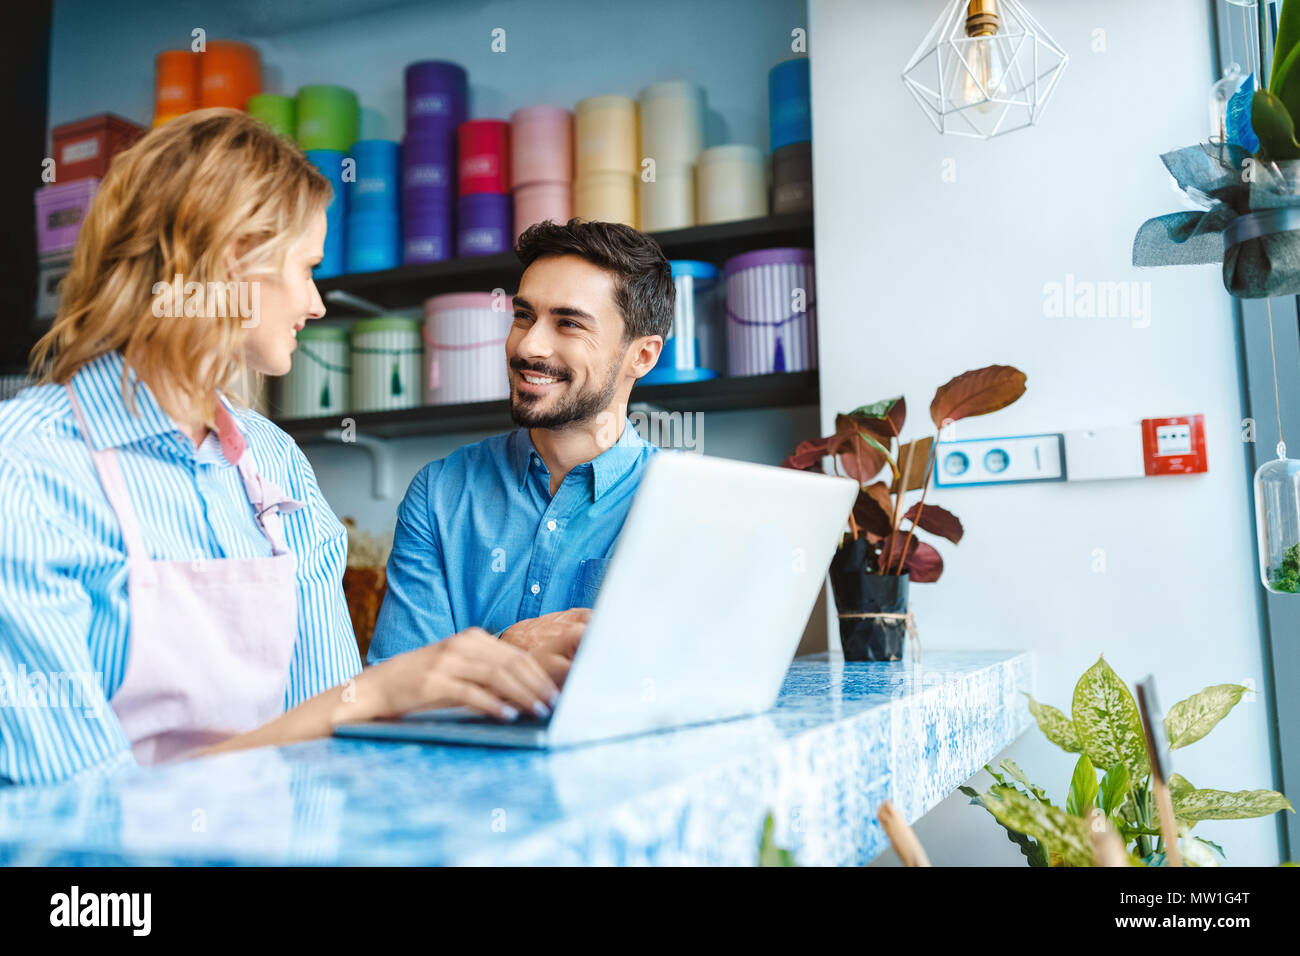 attractive florist and handsome buyer using laptop and smiling each other in flower shop - Stock Image